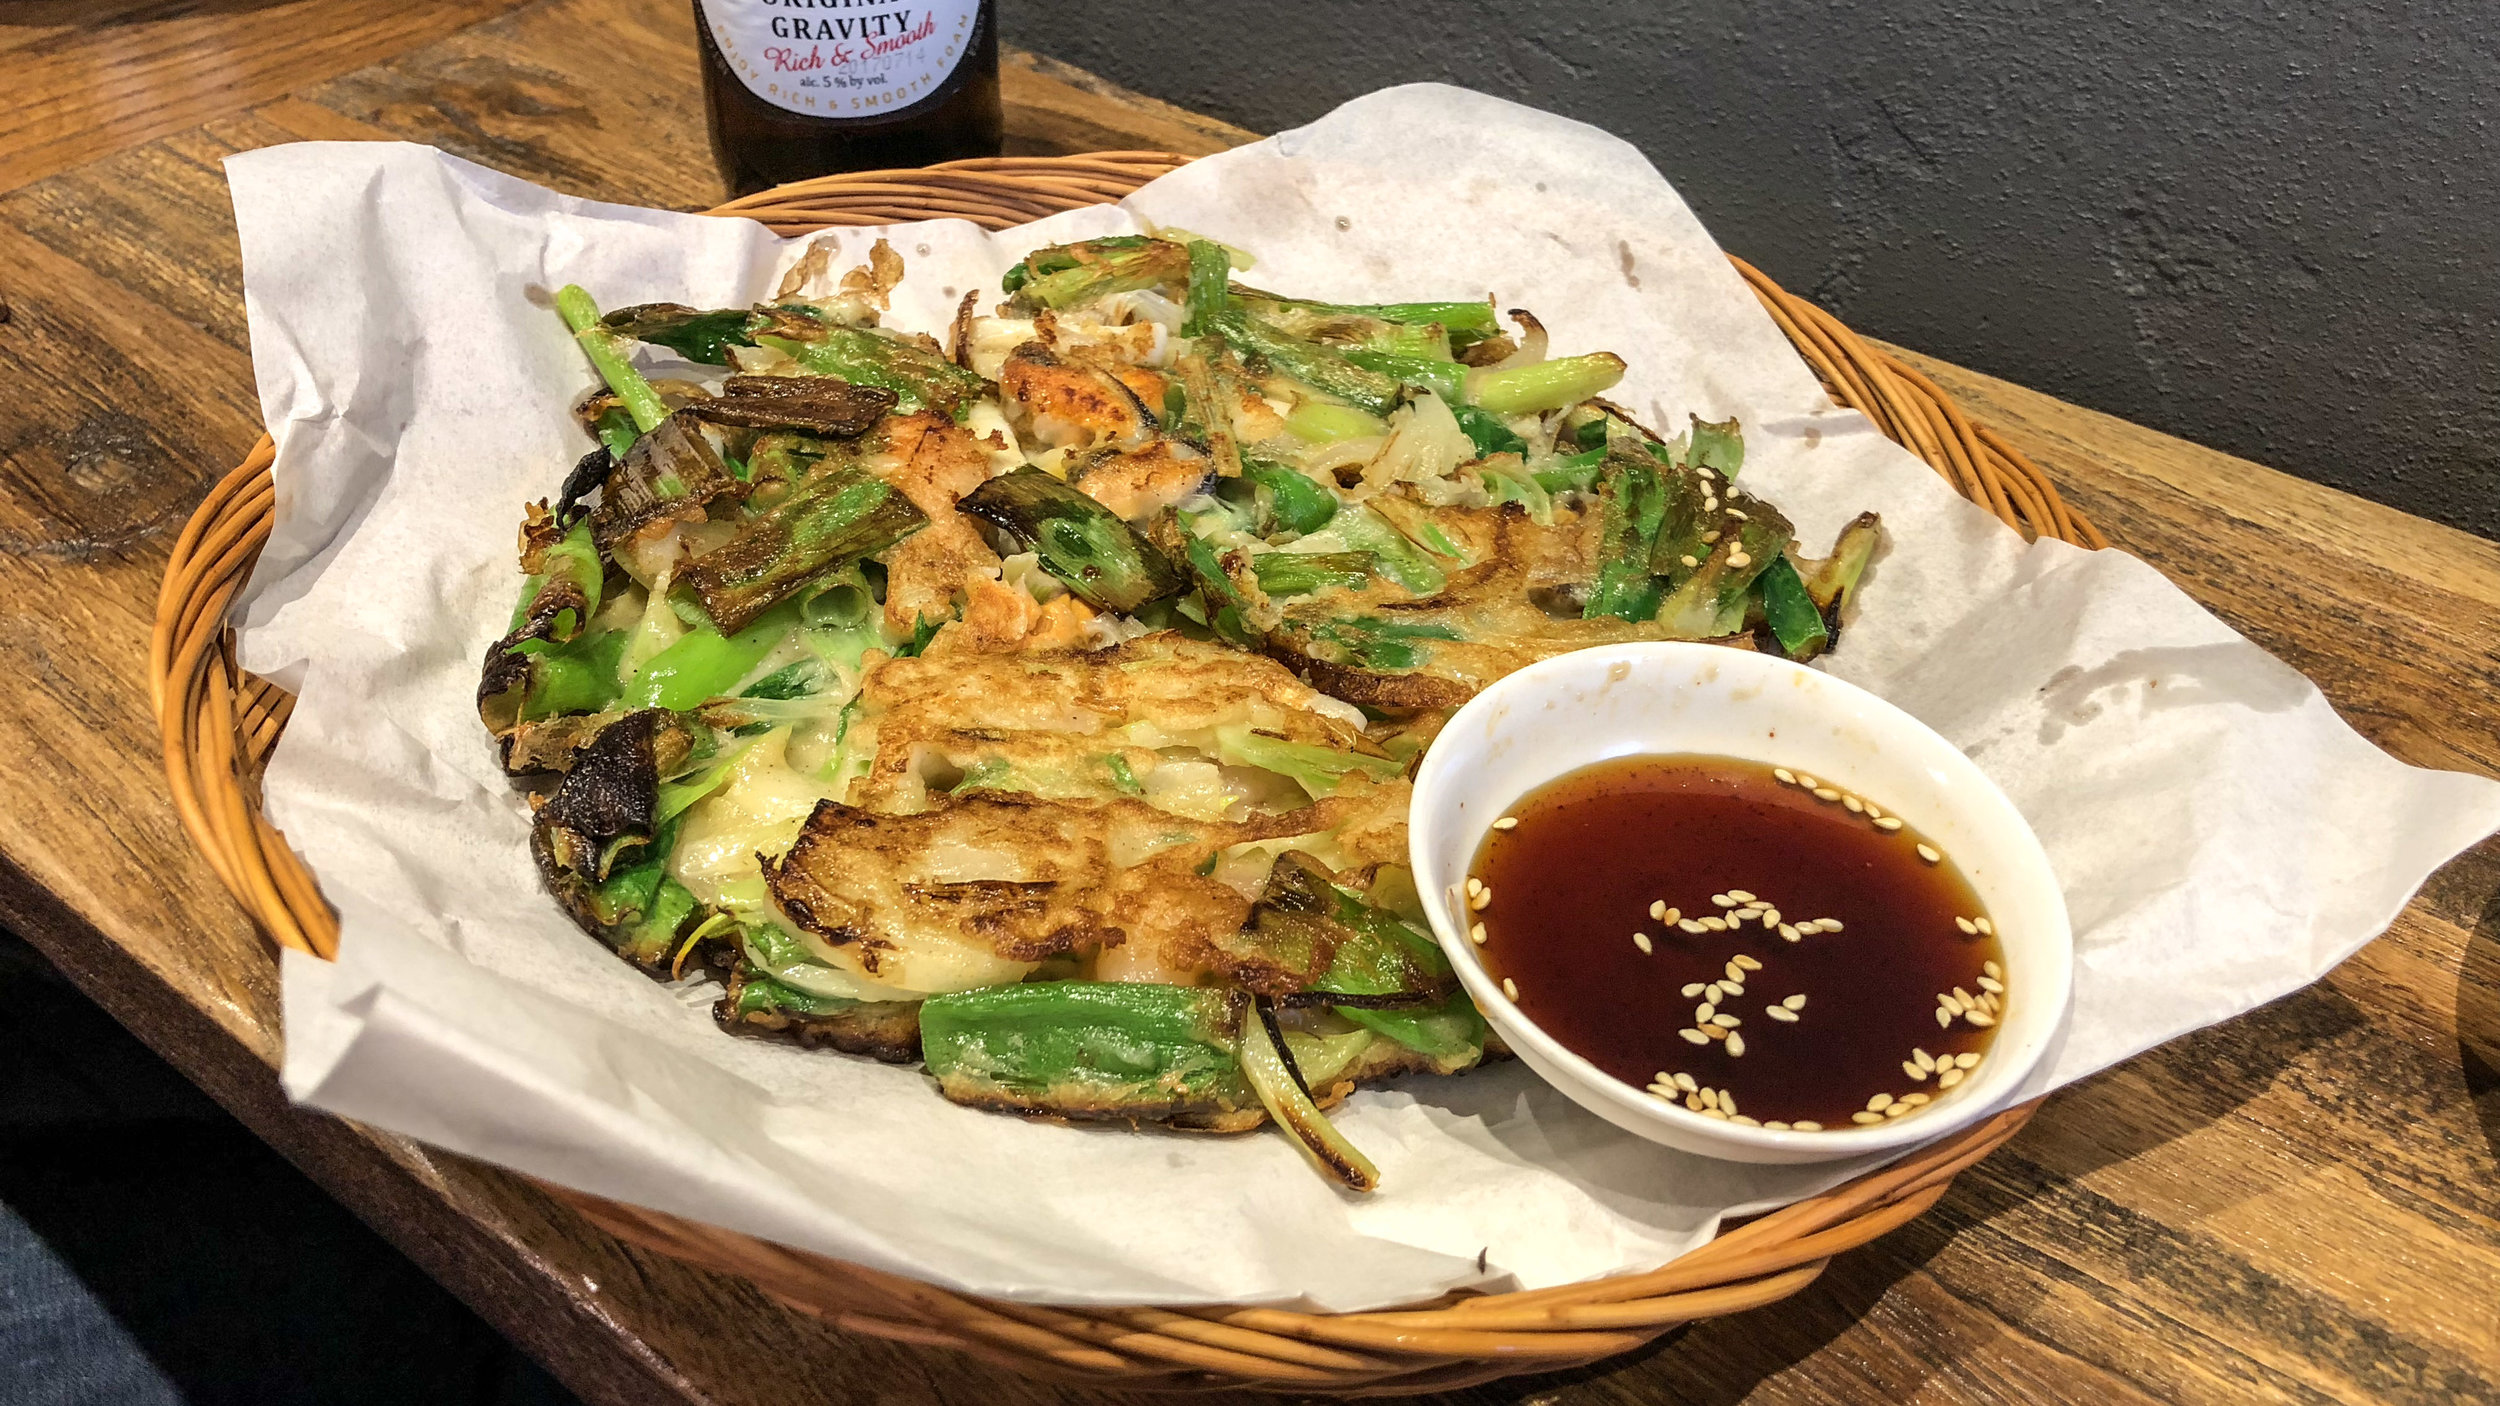 flyingtong_flying_tong_enmore_sydney_newtown_restaurant_diner_asian_korean_night_pancake_seafood_traditional_onion_dipping_kloud_lager